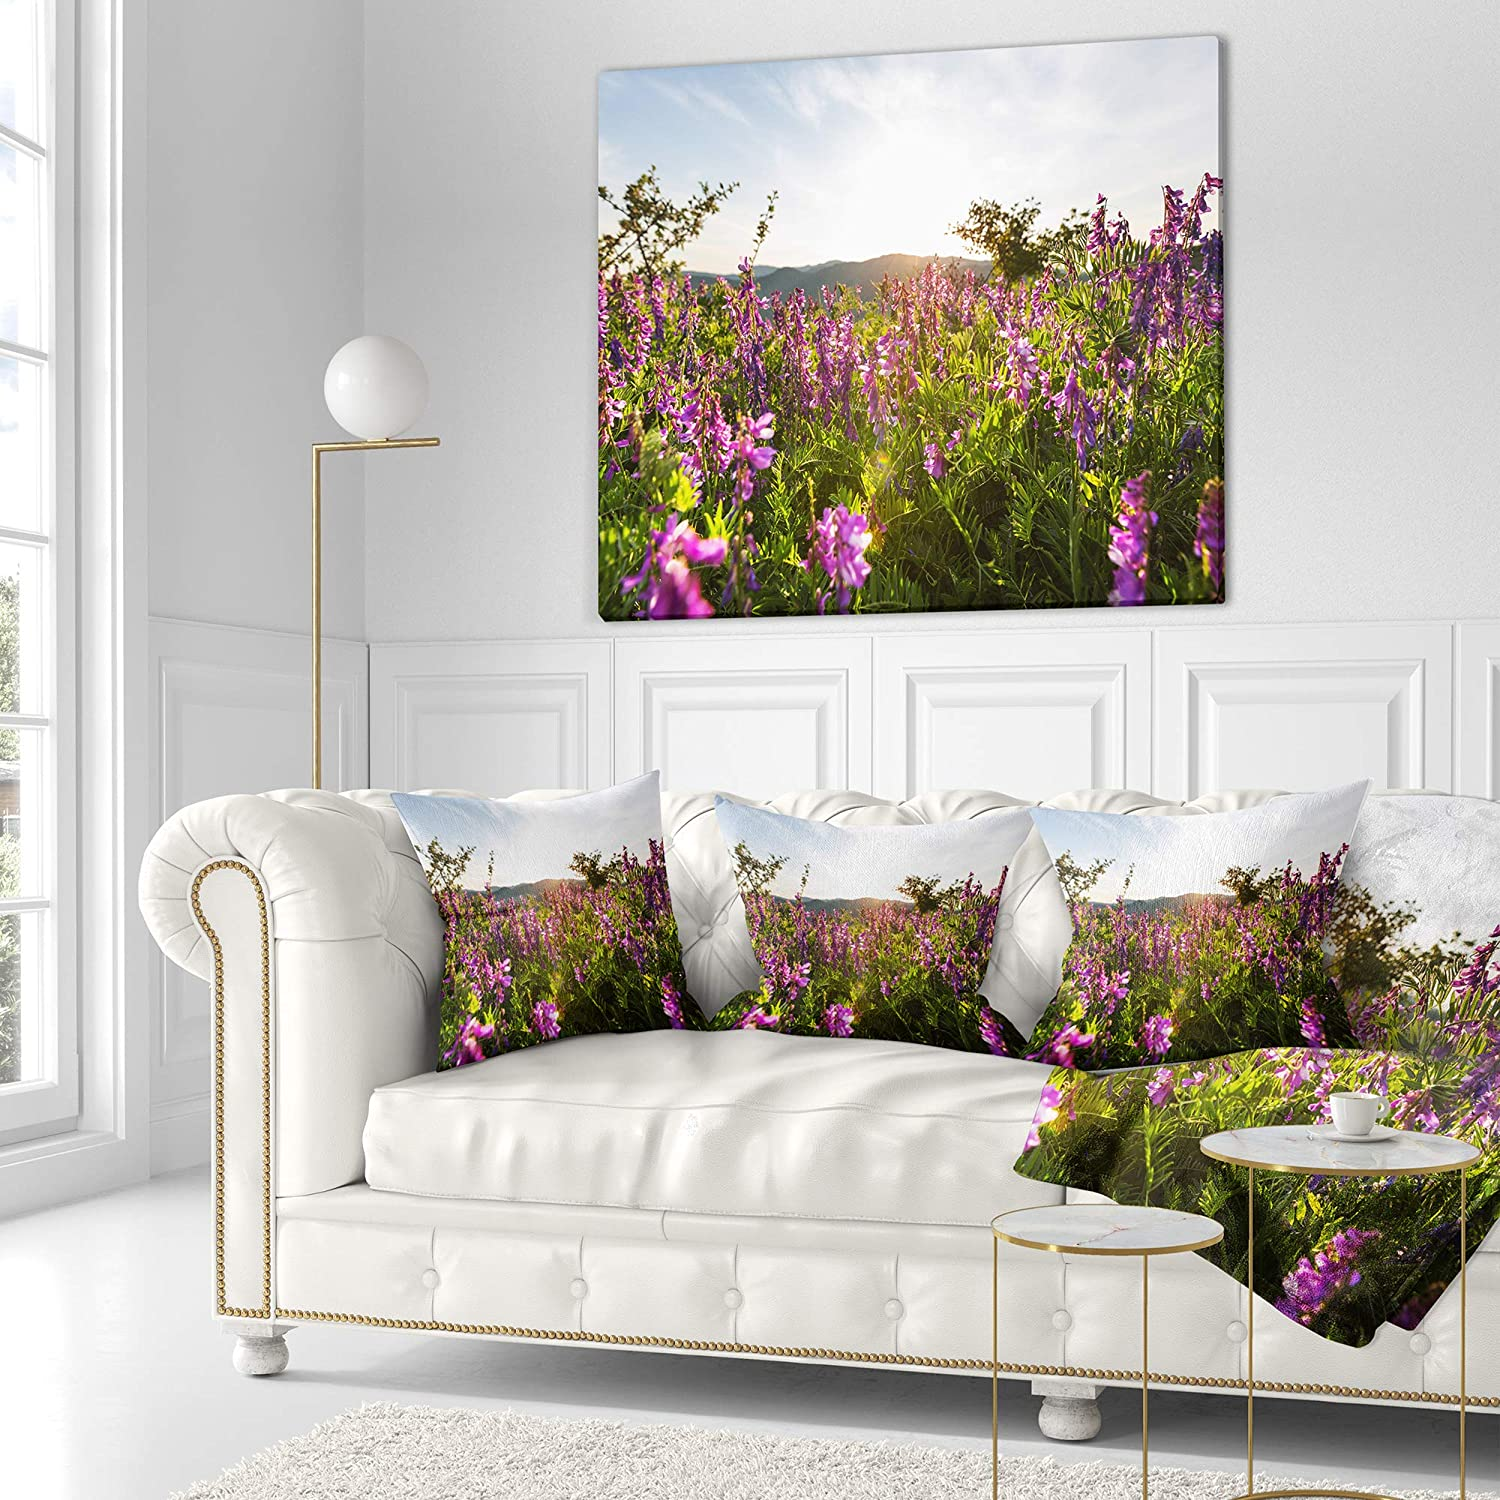 Sofa Throw Pillow 26 in x 26 in Designart CU12619-26-26 Amazing Summer Pasture with Flowers Floral Cushion Cover for Living Room